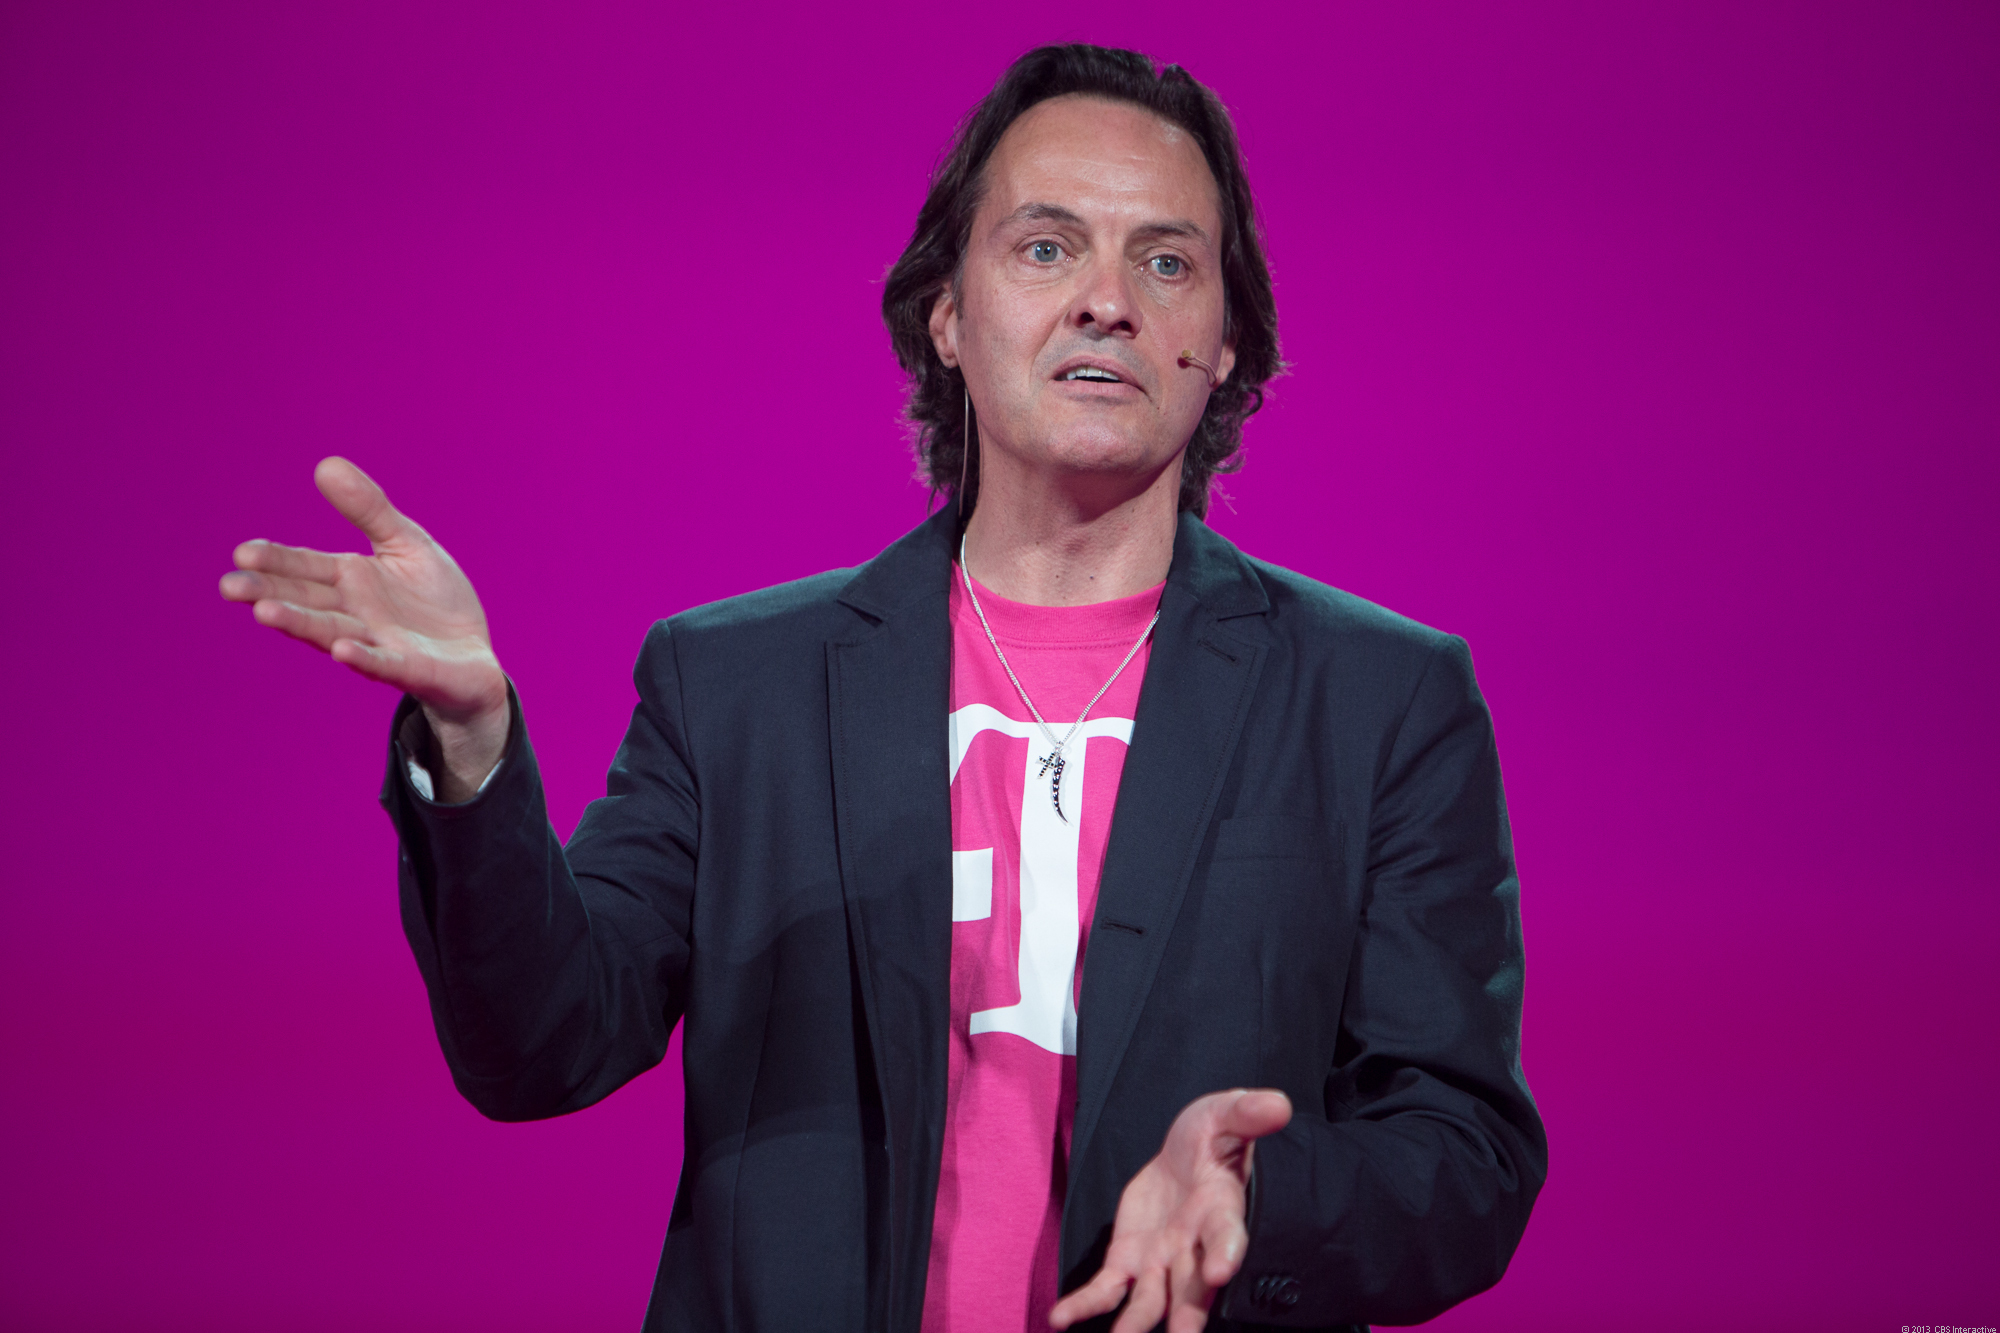 T-Mobile CEO John Legere at March 26, 2013 press conference.